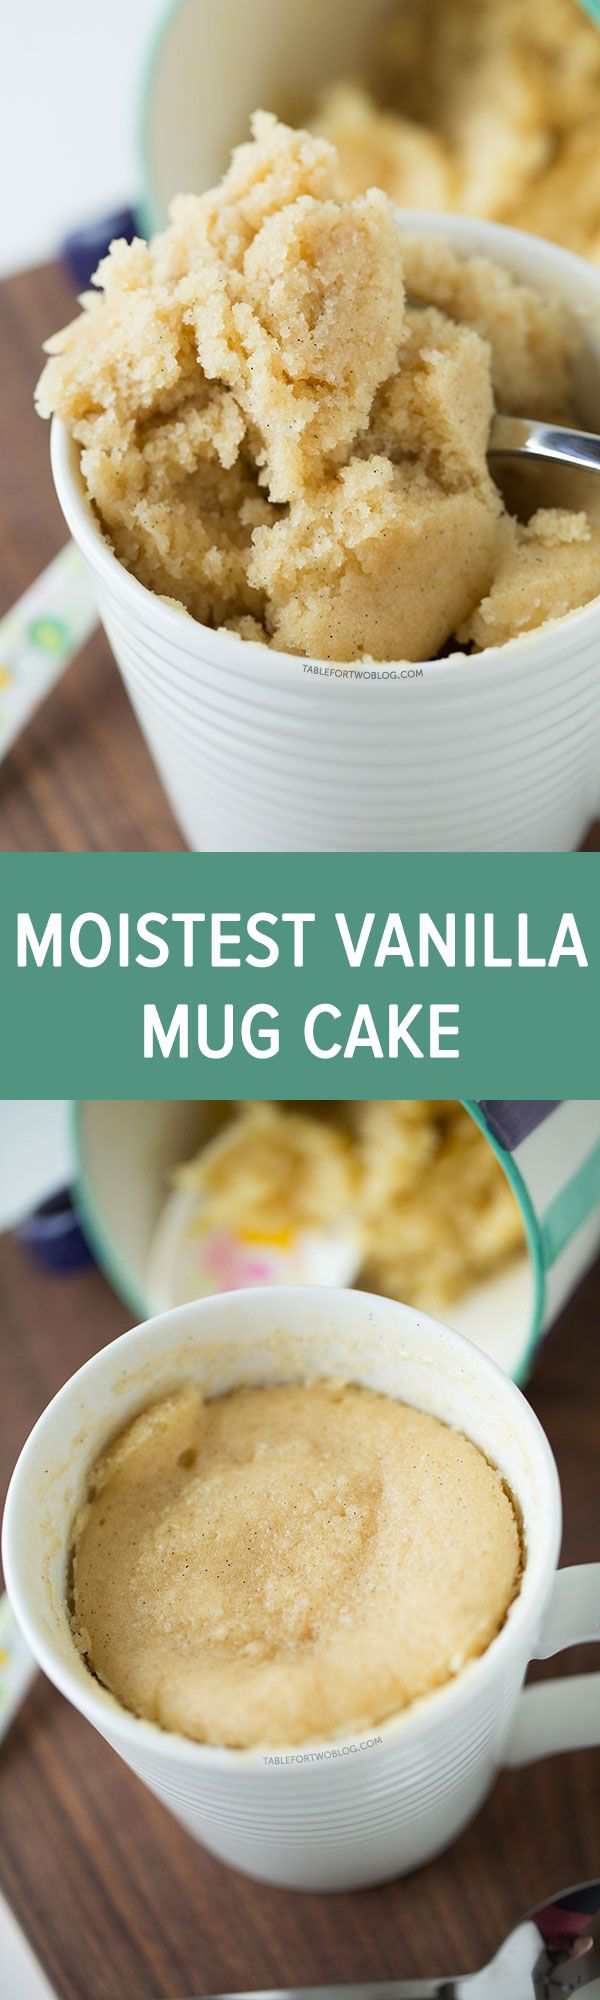 Just made and devoured this with a few little substitutions here and there (cream instead of milk, vanilla and almond extract instead of the paste, added a quick glaze) and it was amazing. Must make! >> The moistest very vanilla mug cake is like a fluffy vanilla cupcake in a mug! Recipe on tablefortwoblog.com